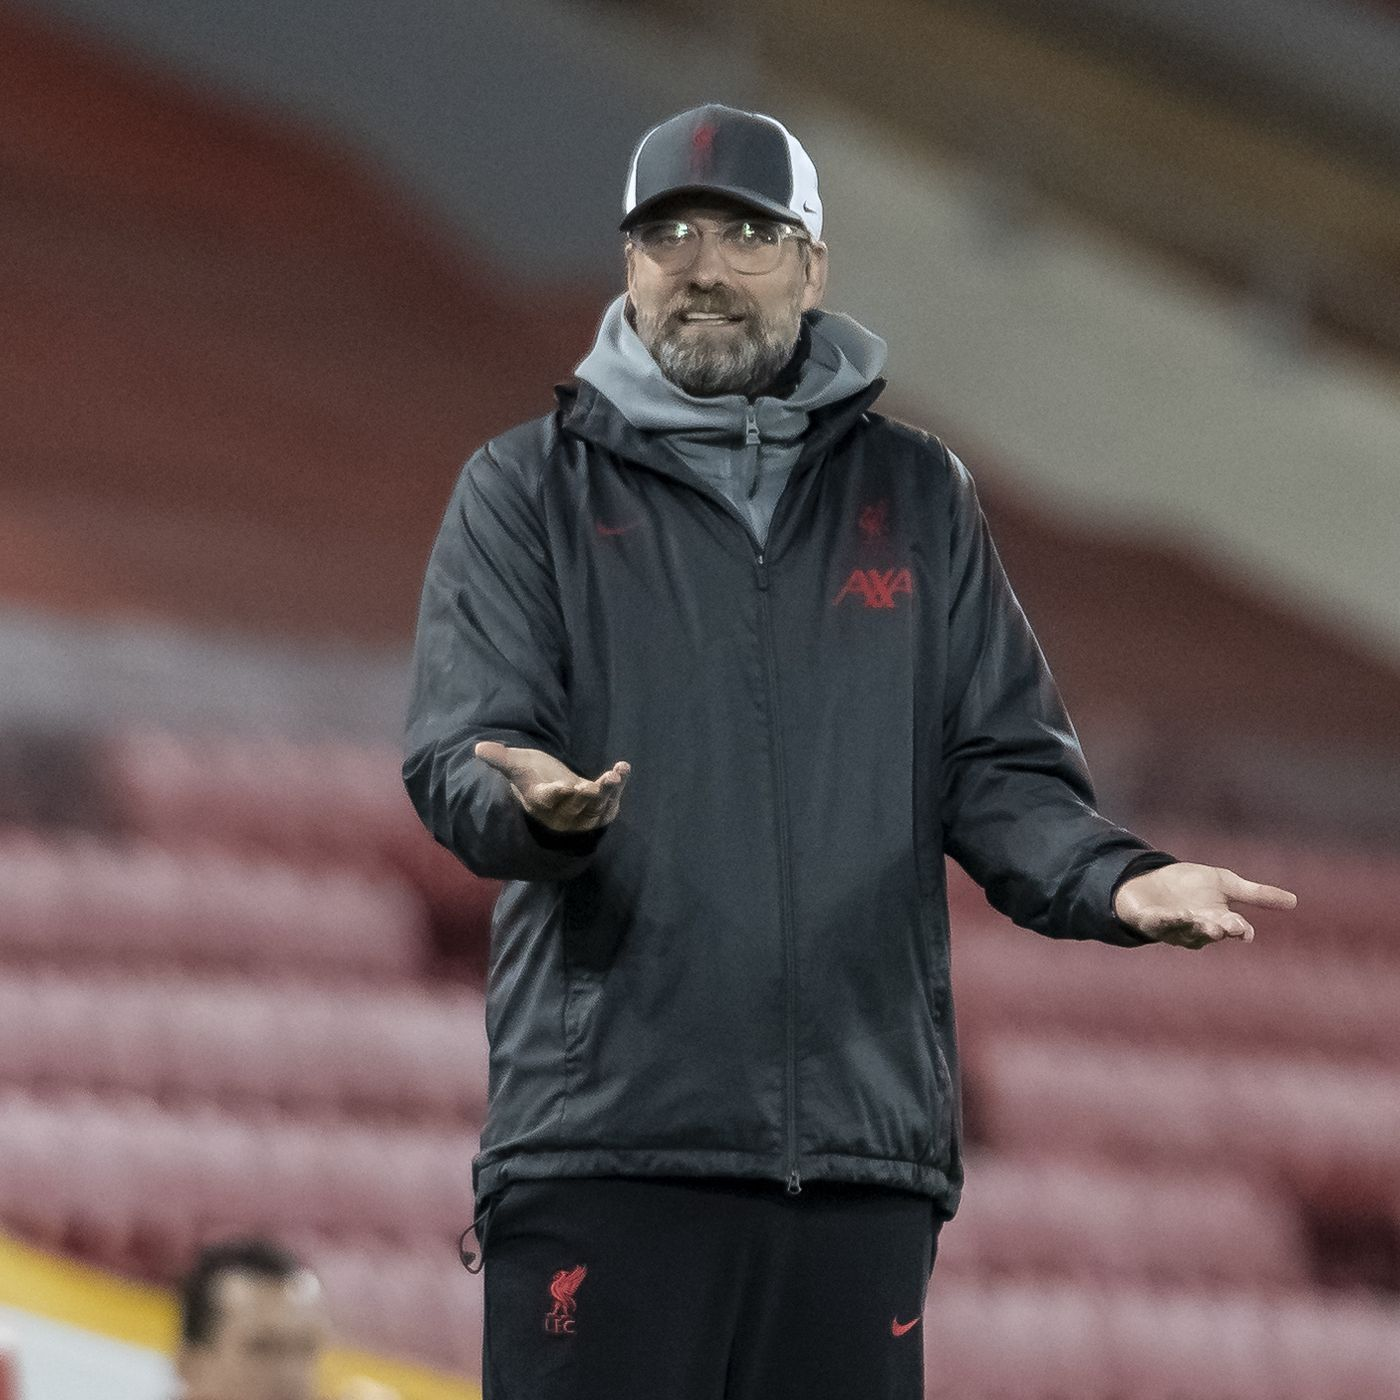 Press conference: Jurgen Klopp previews visit of Wolves - and reveals Trent Alexander-Arnold and Naby Keita boost